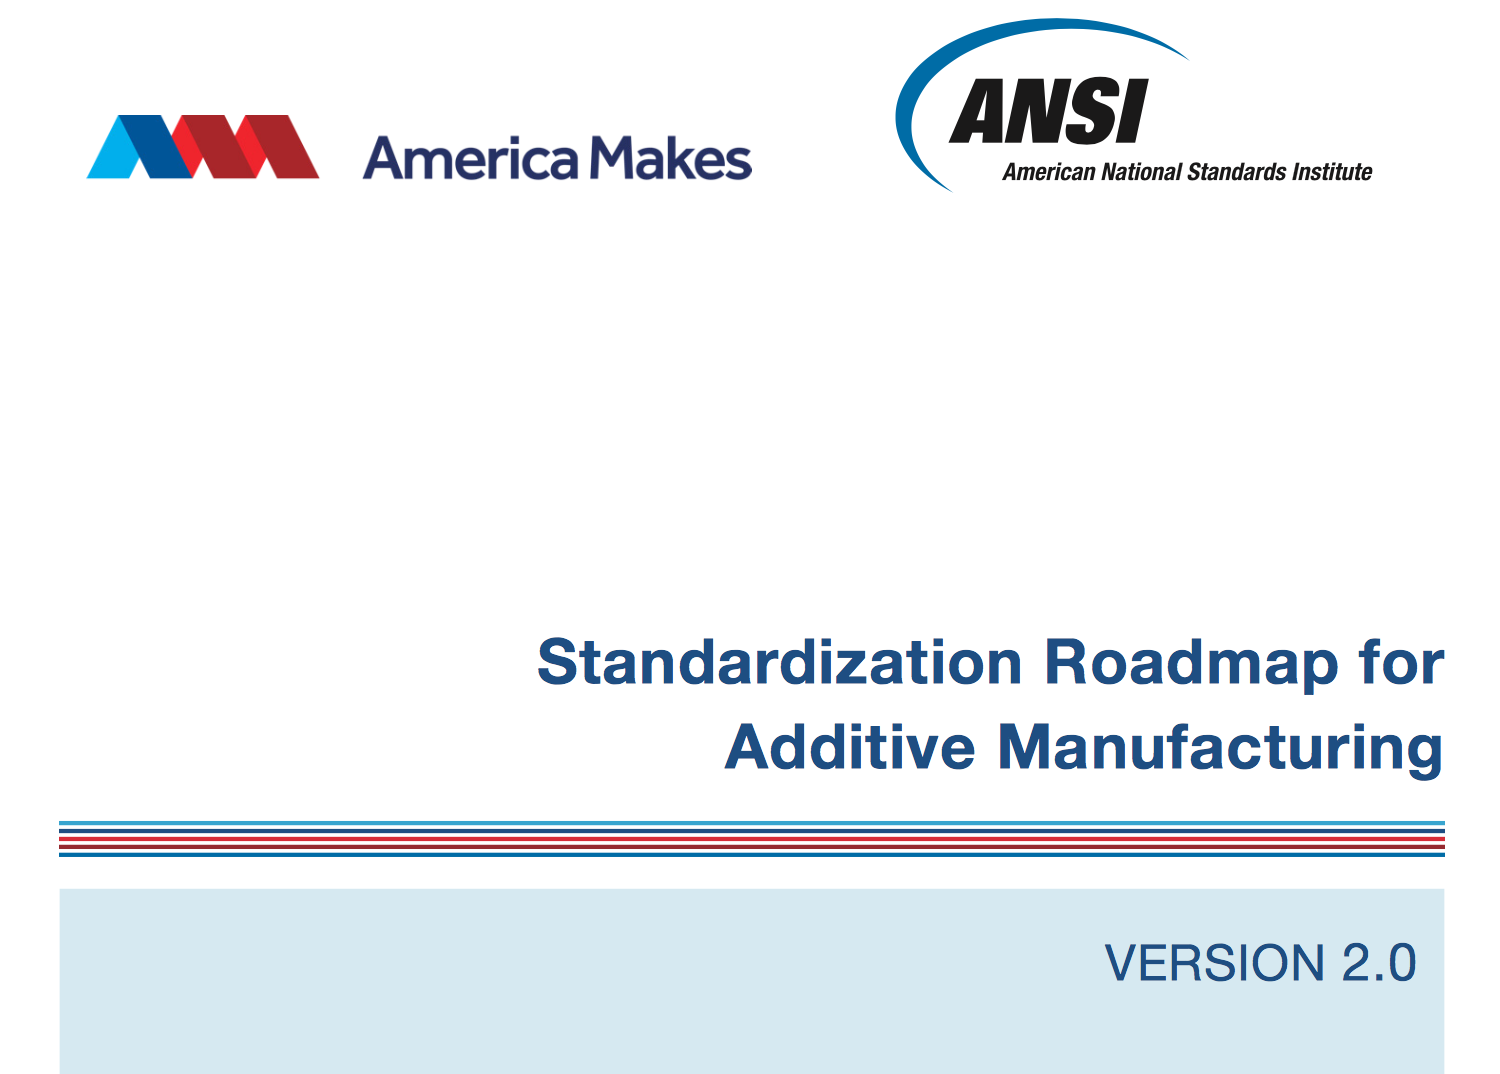 Hot of the press: the AMSC's Standardization Roadmap for Additive Manufacturing certification (Version 2.0).